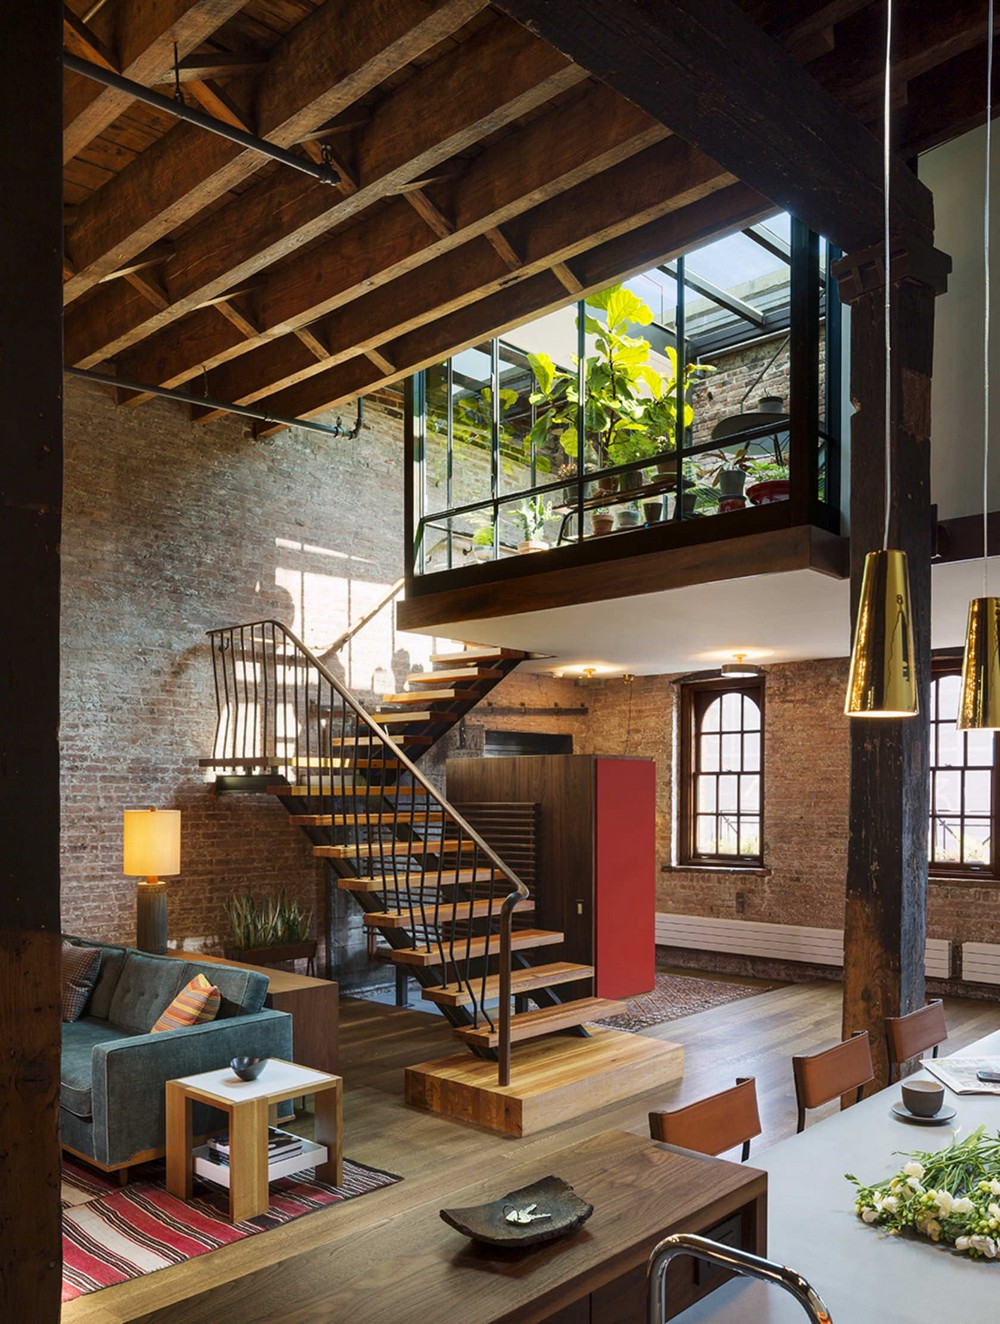 Be Inspired by a Series of Stunning New York Industrial Lofts 9 New York Industrial Lofts Be Inspired by a Series of Stunning New York Industrial Lofts Be Inspired by a Series of Stunning New York Industrial Lofts 9